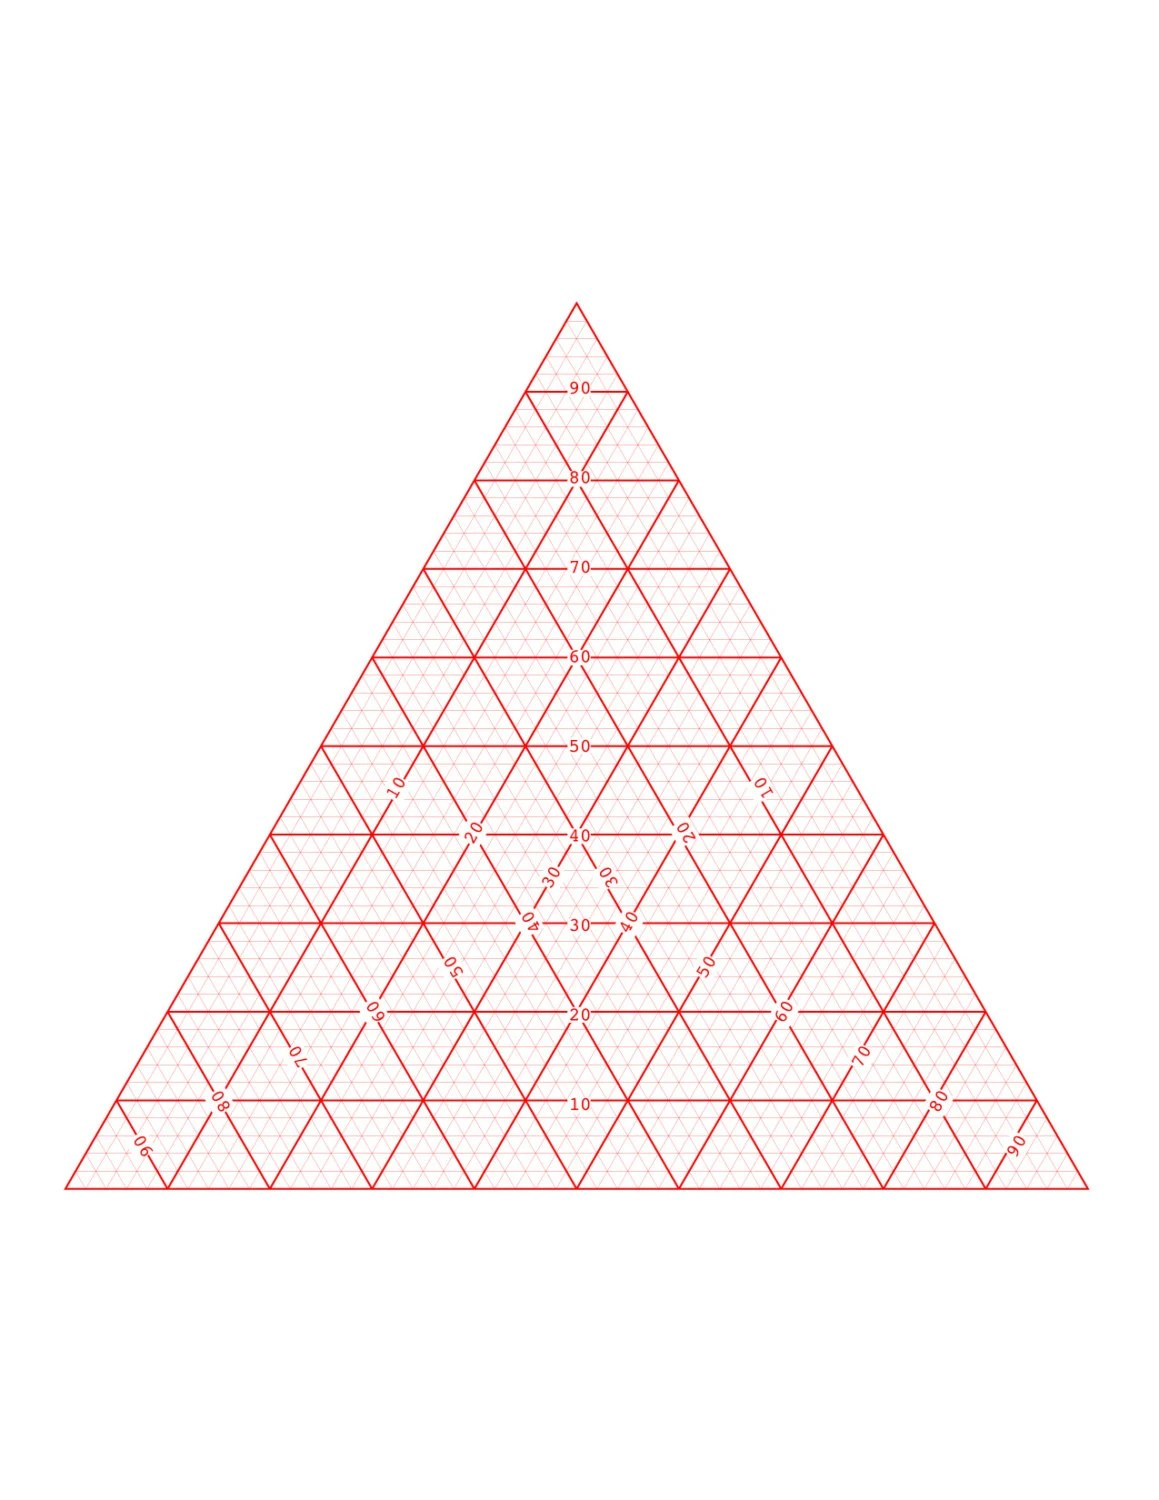 15 Ternary Graph Papers Triangular Graph Paper Digital Etsy